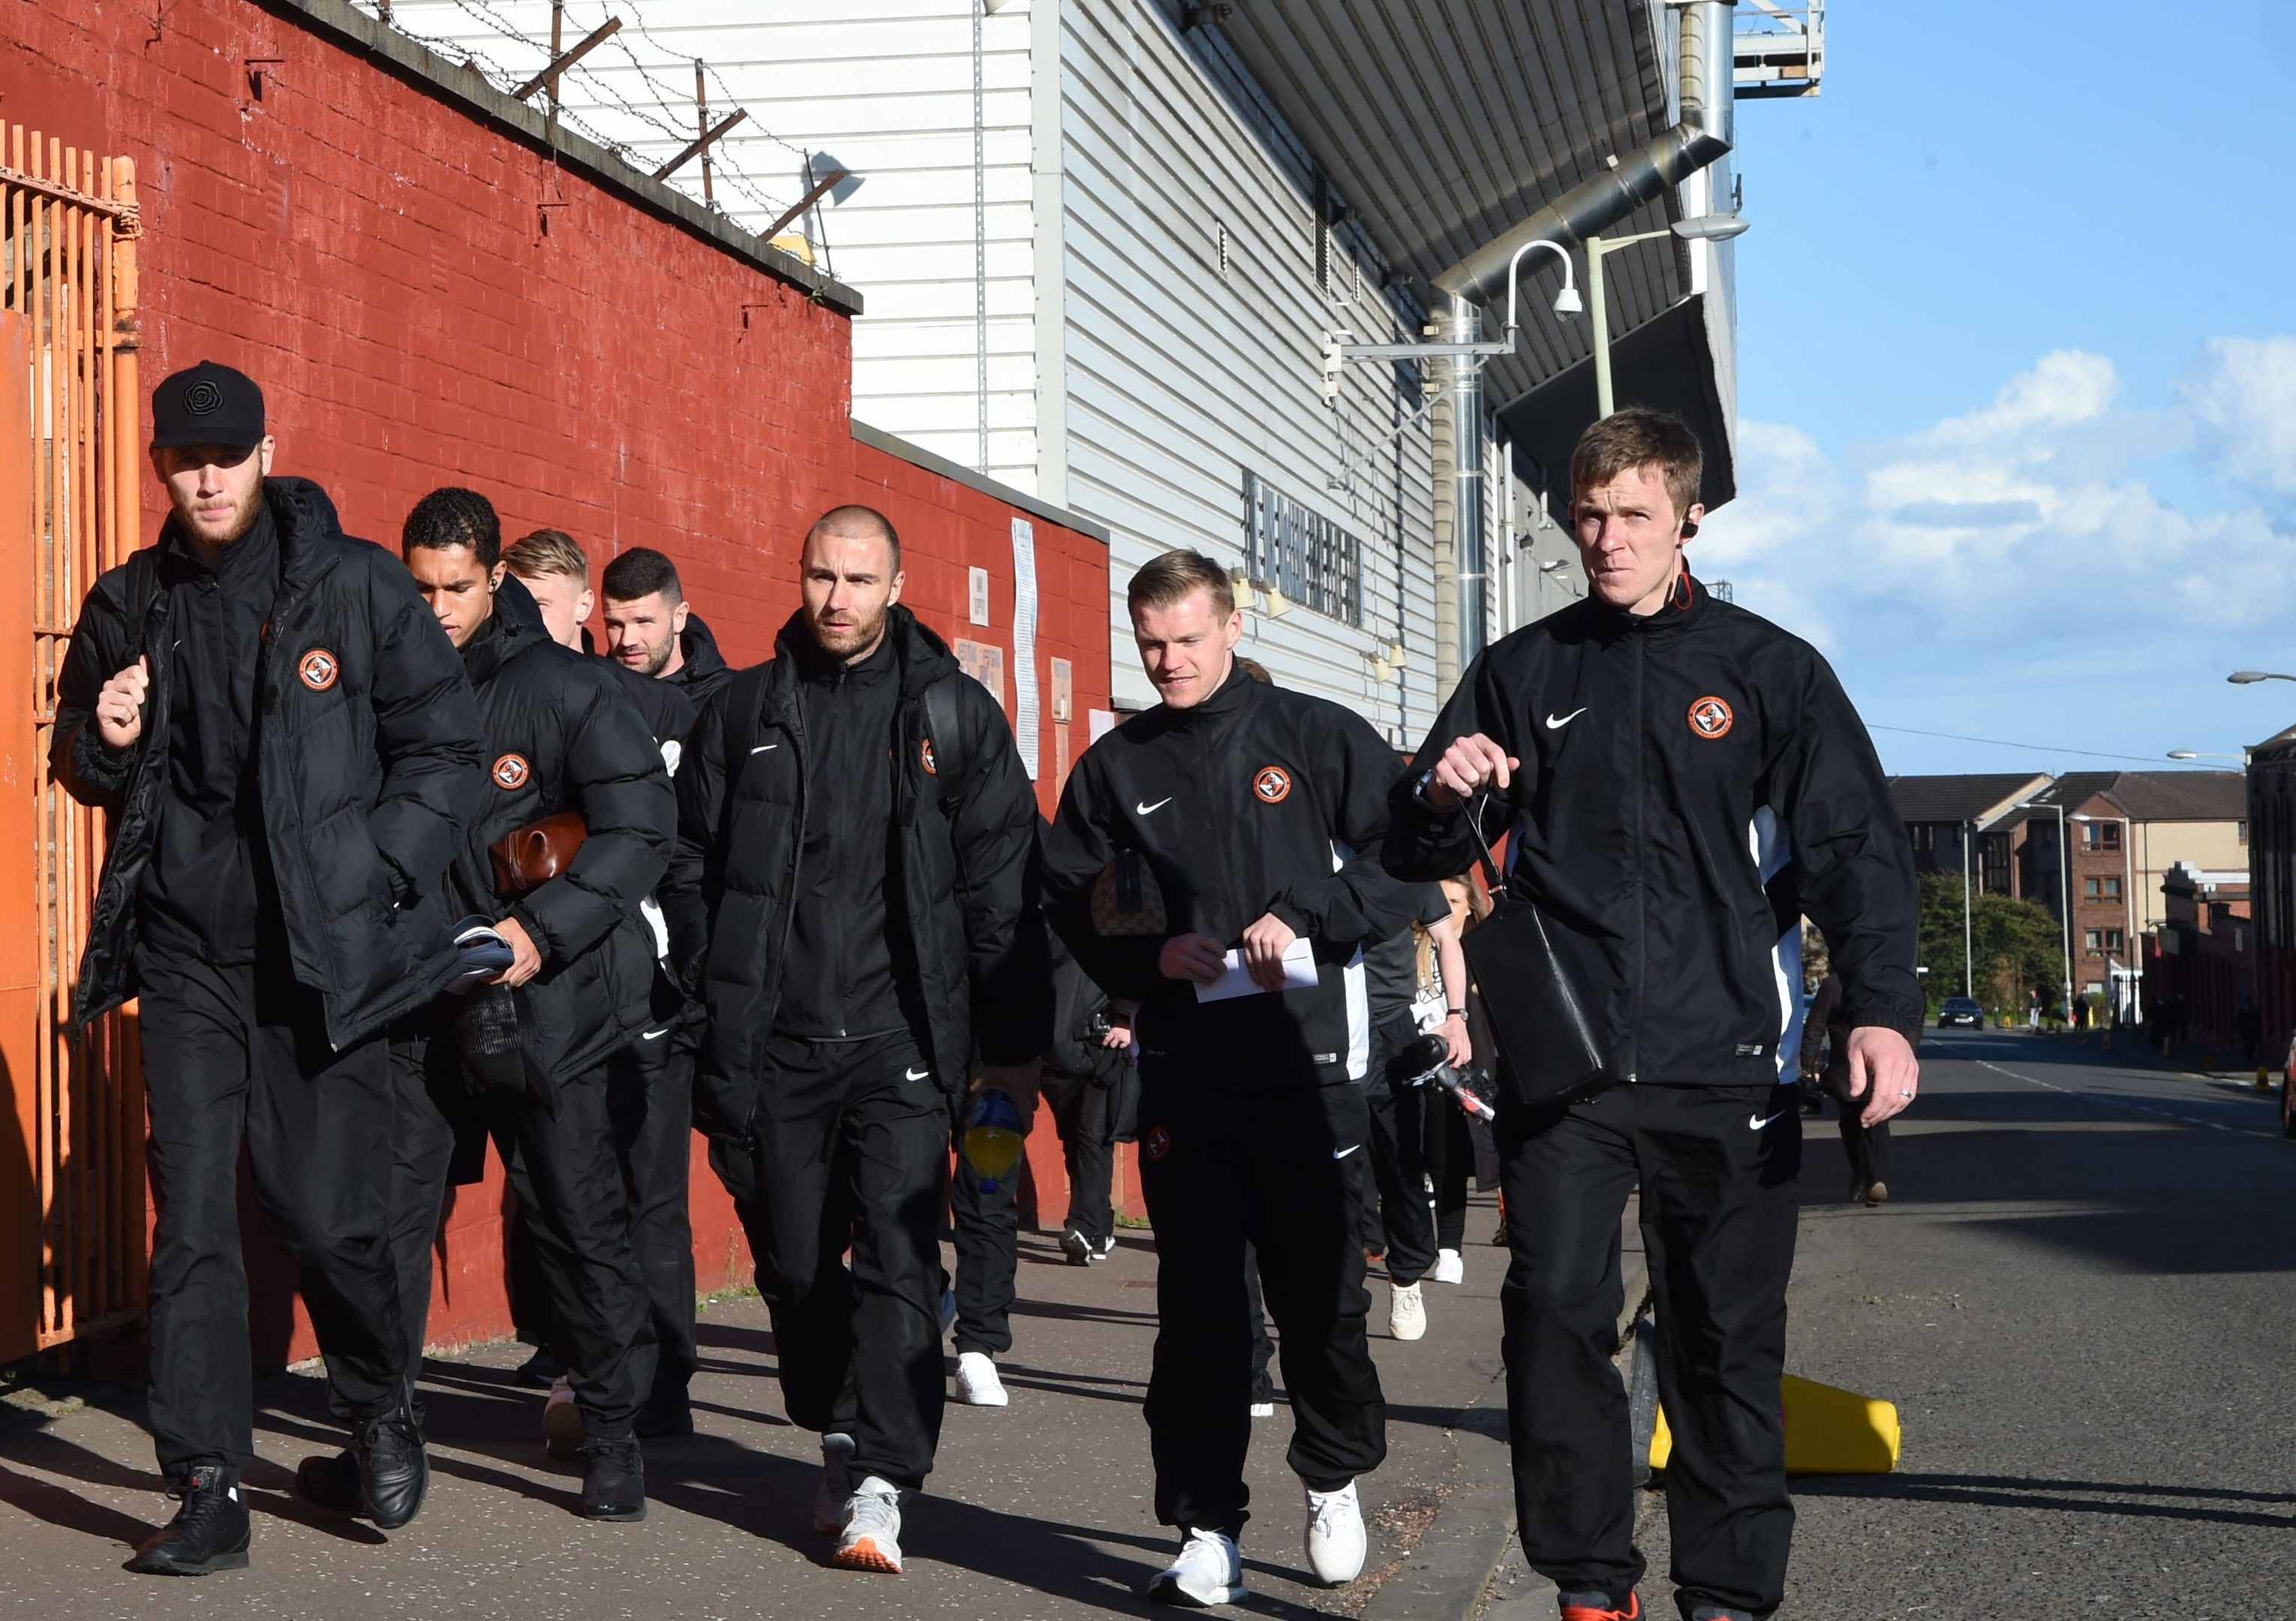 These Dundee United players were the last ones to make the short walk from Tannadice to Dens.